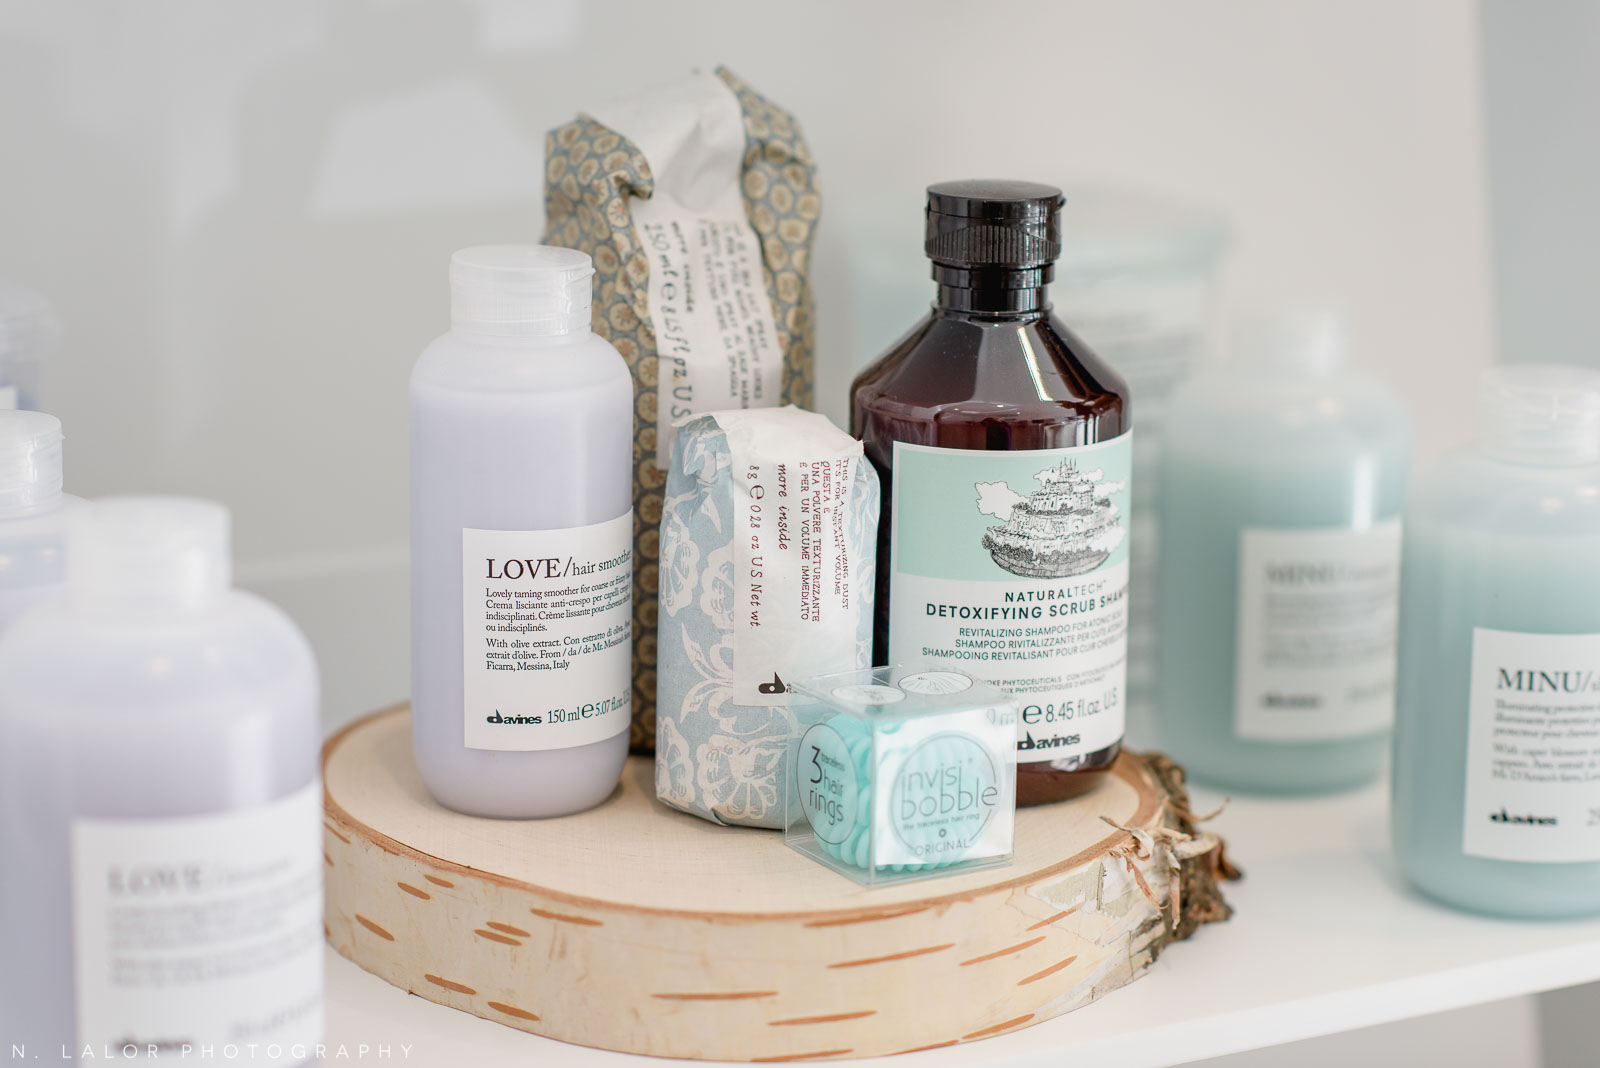 Davines product line at Haus of Pretty. Photo by N. Lalor Photography.